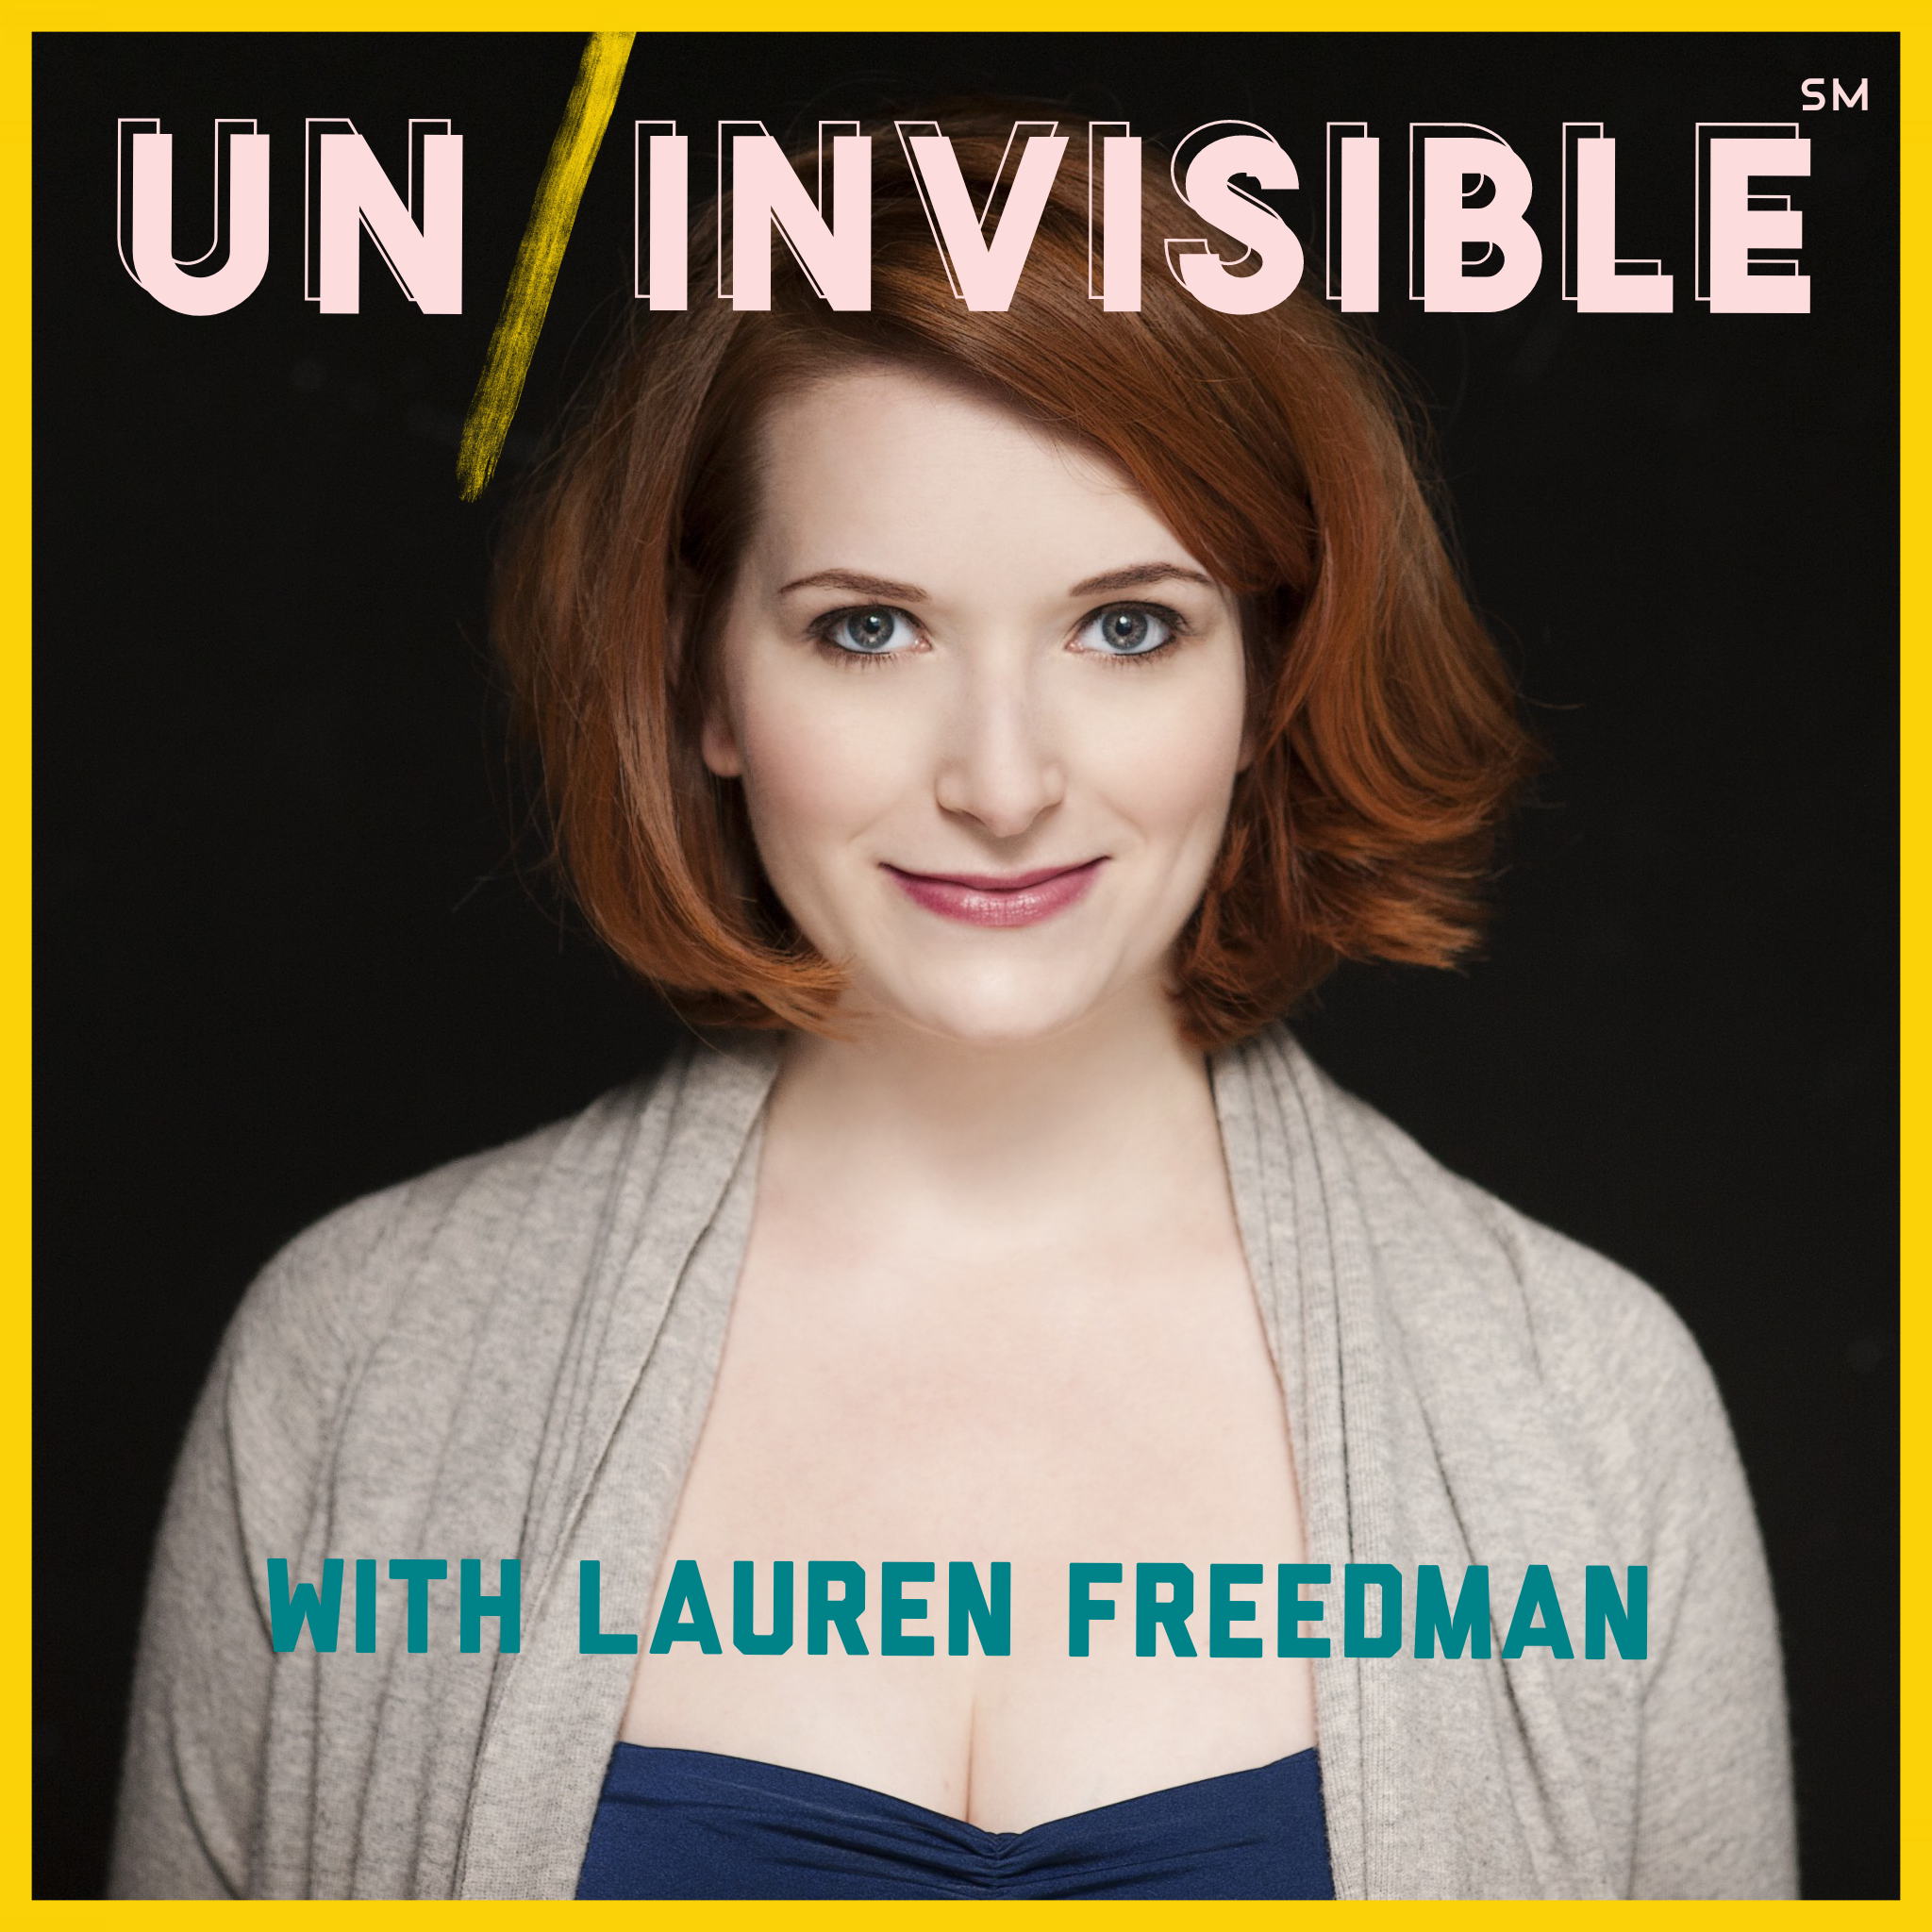 Uninvisible Podcast